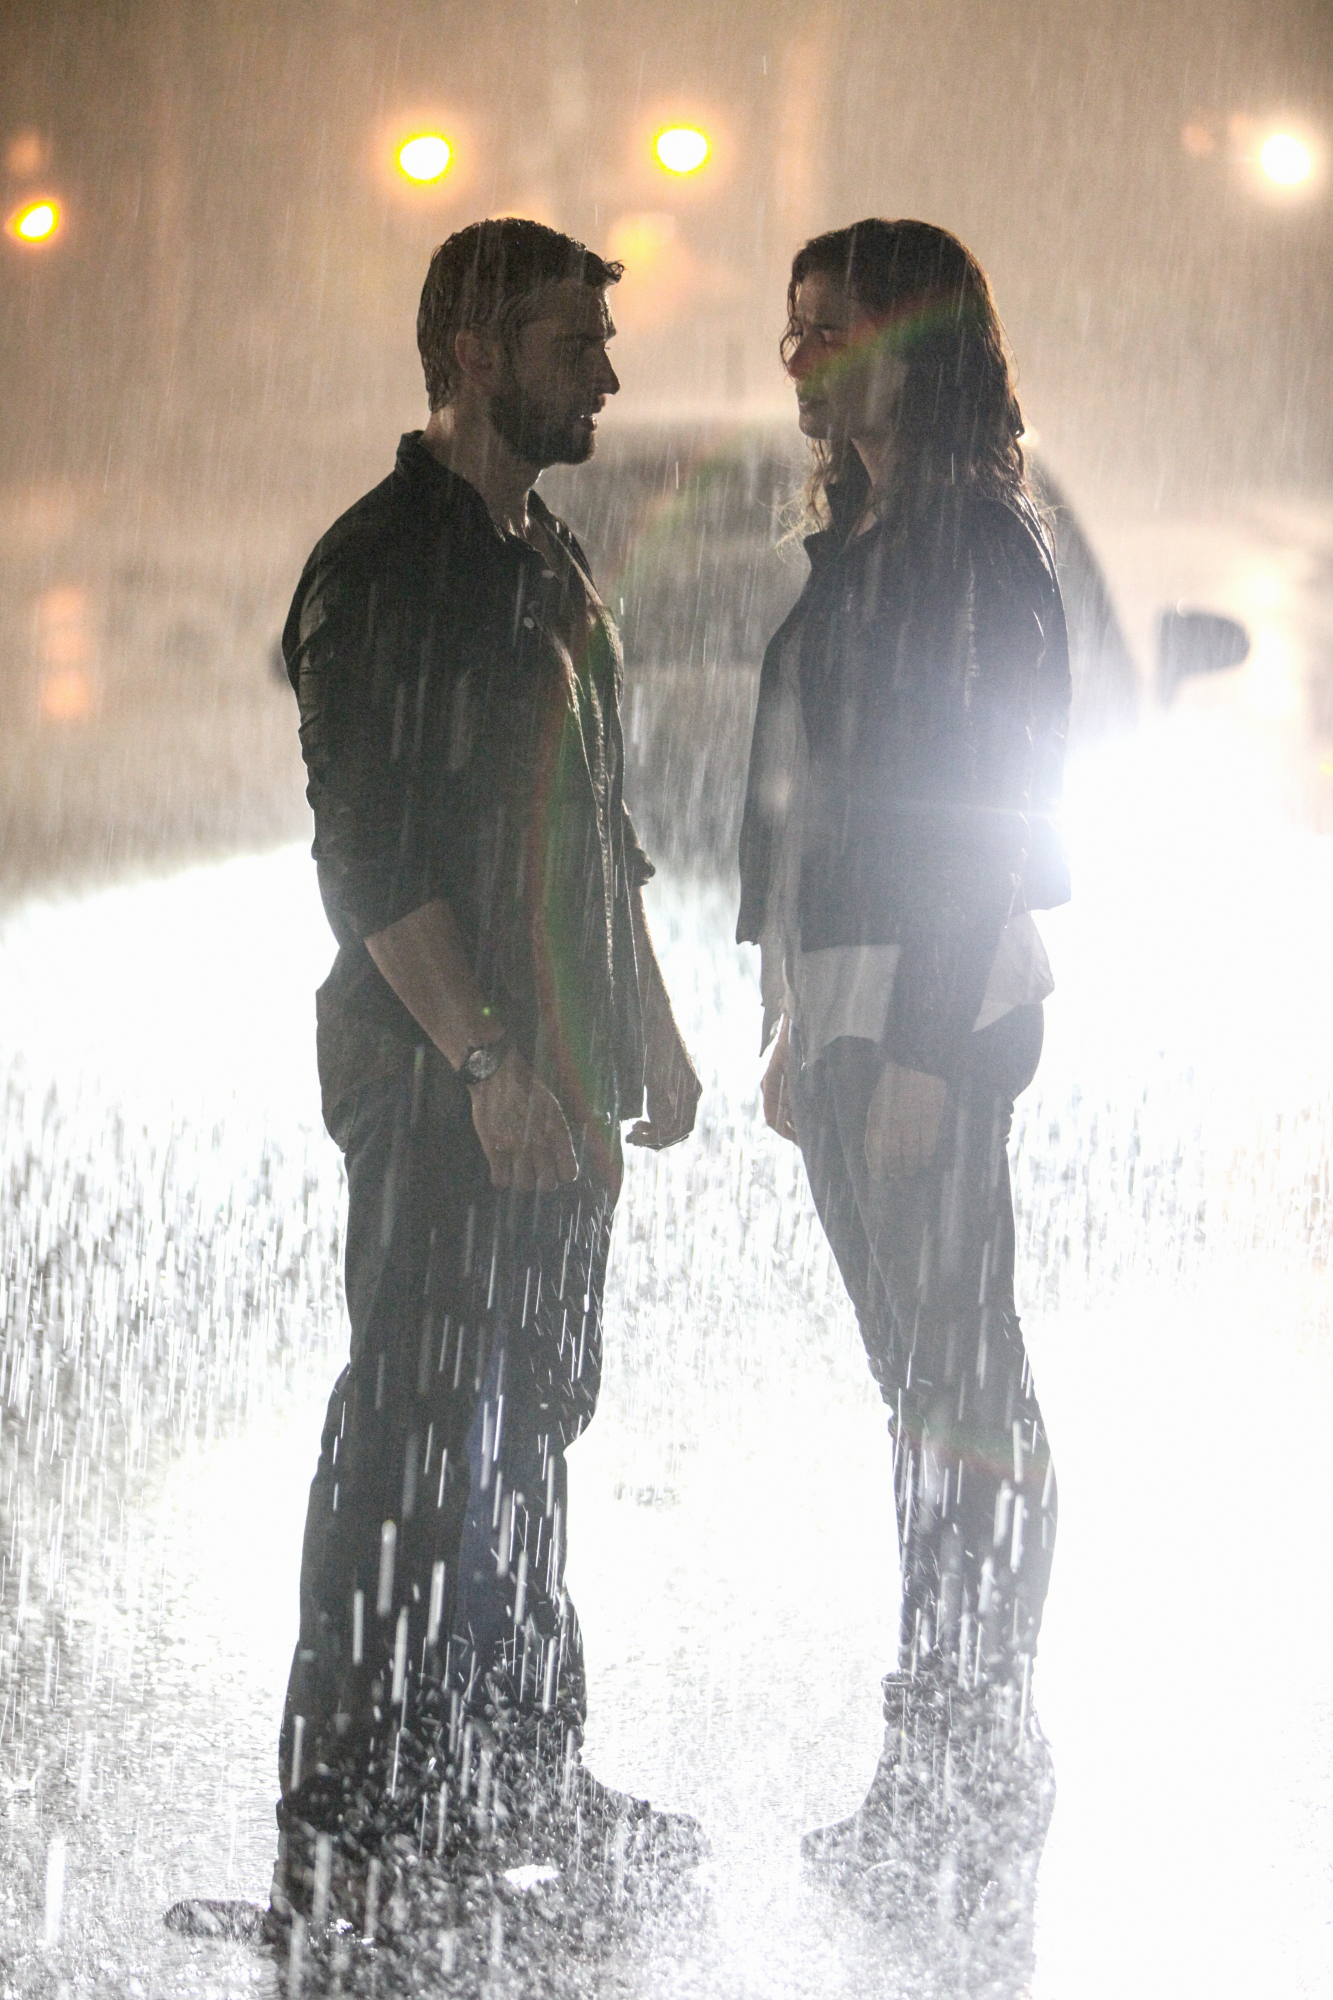 5. When they found each other in the rain